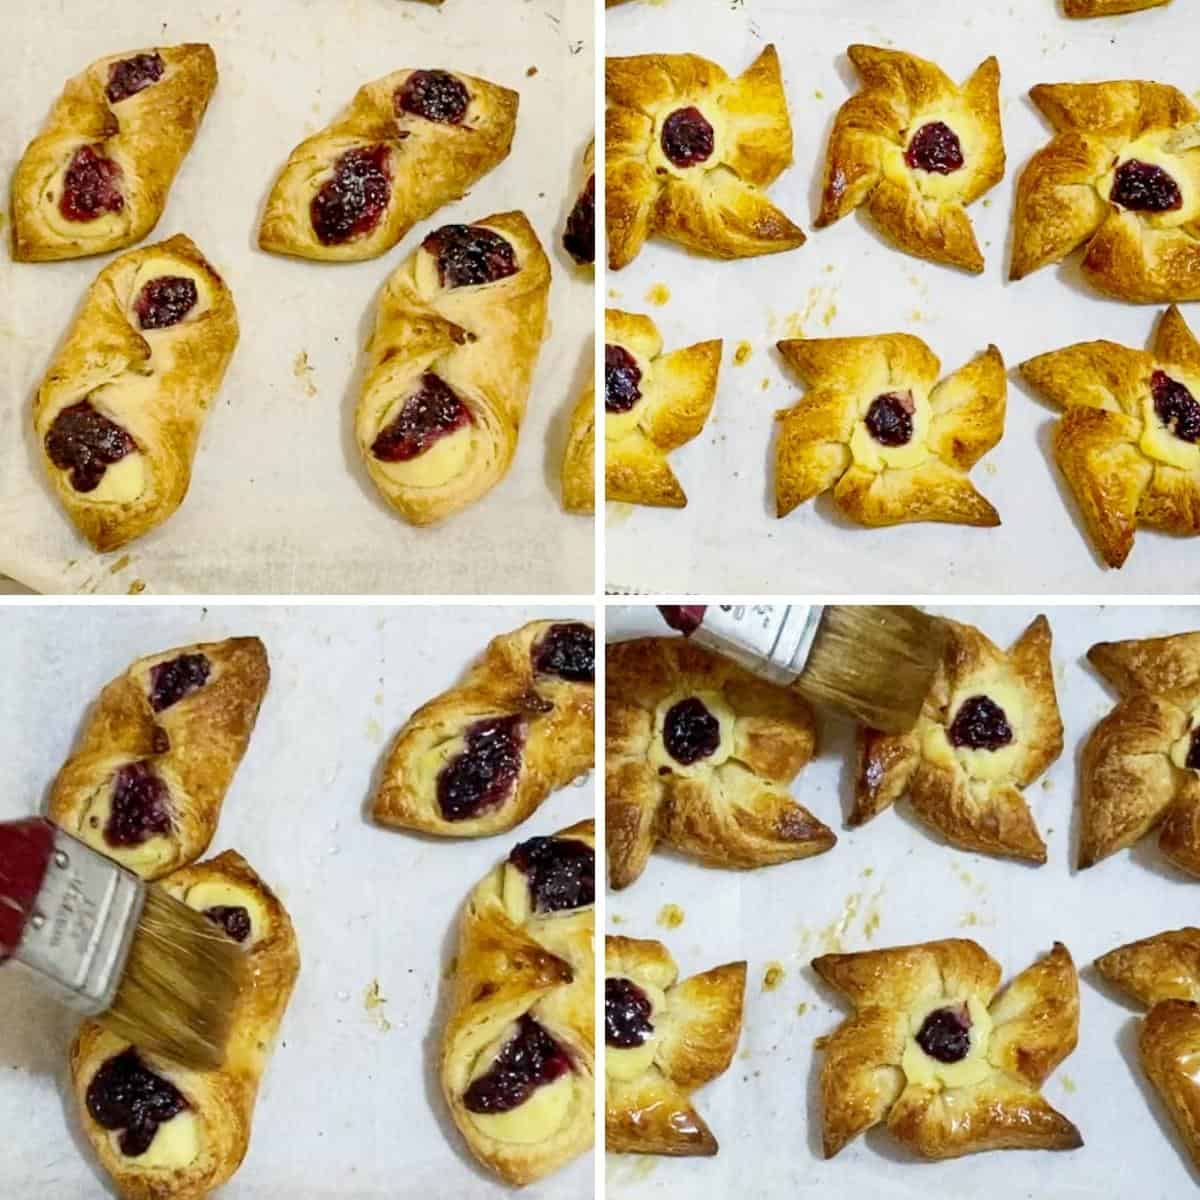 Progress pictures collage glazing the Danish pastries.